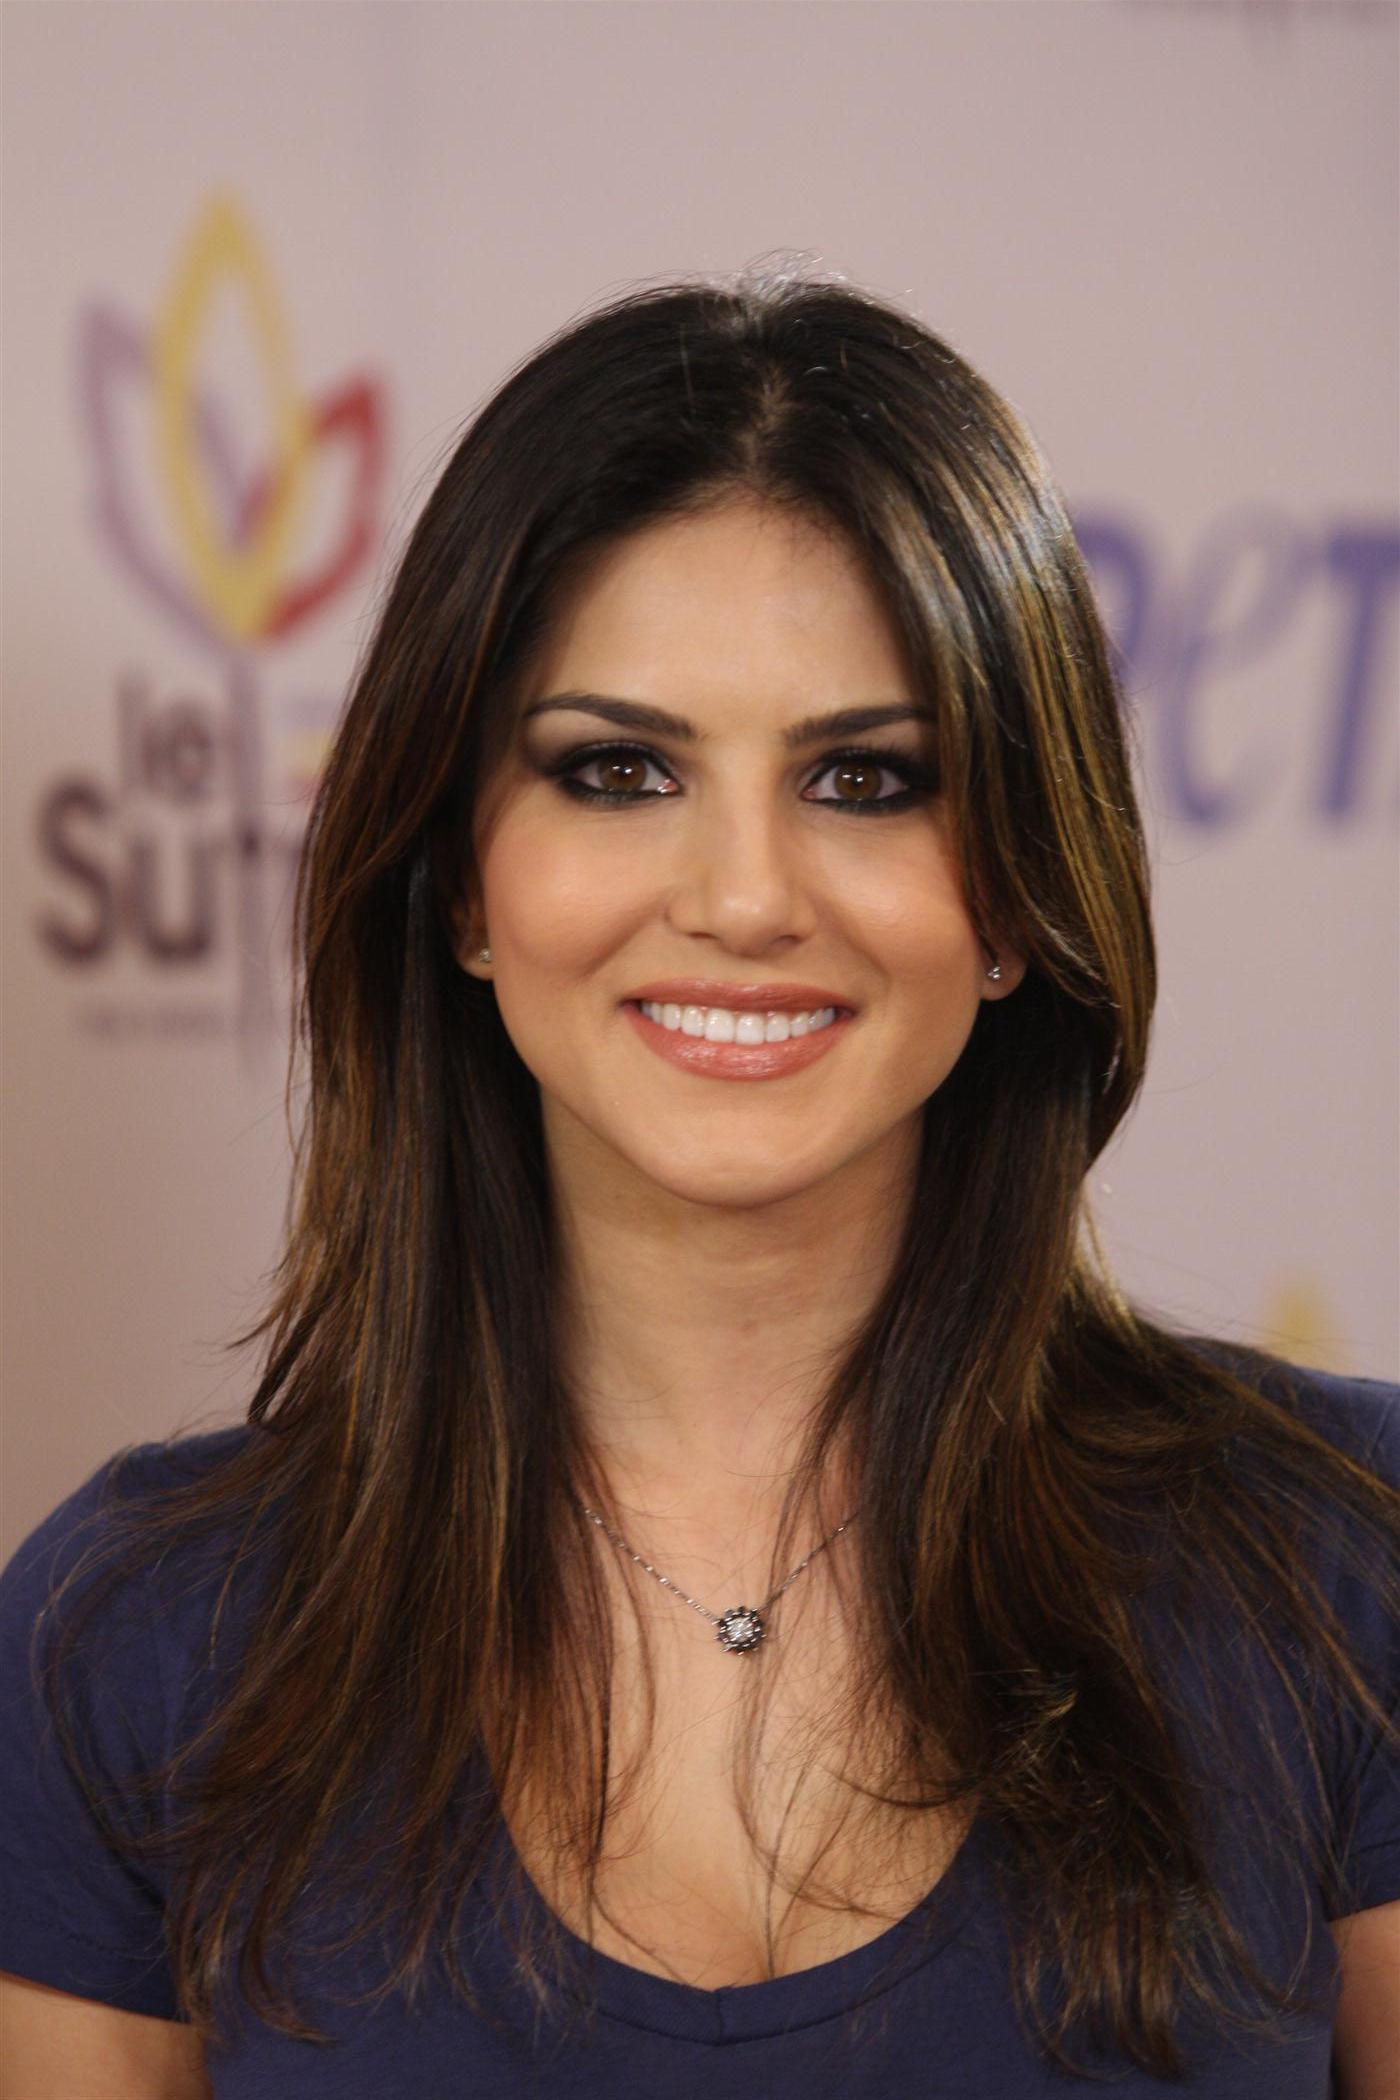 Penthouse model turned actress Sunny Leone at the unveiling of new ad ...